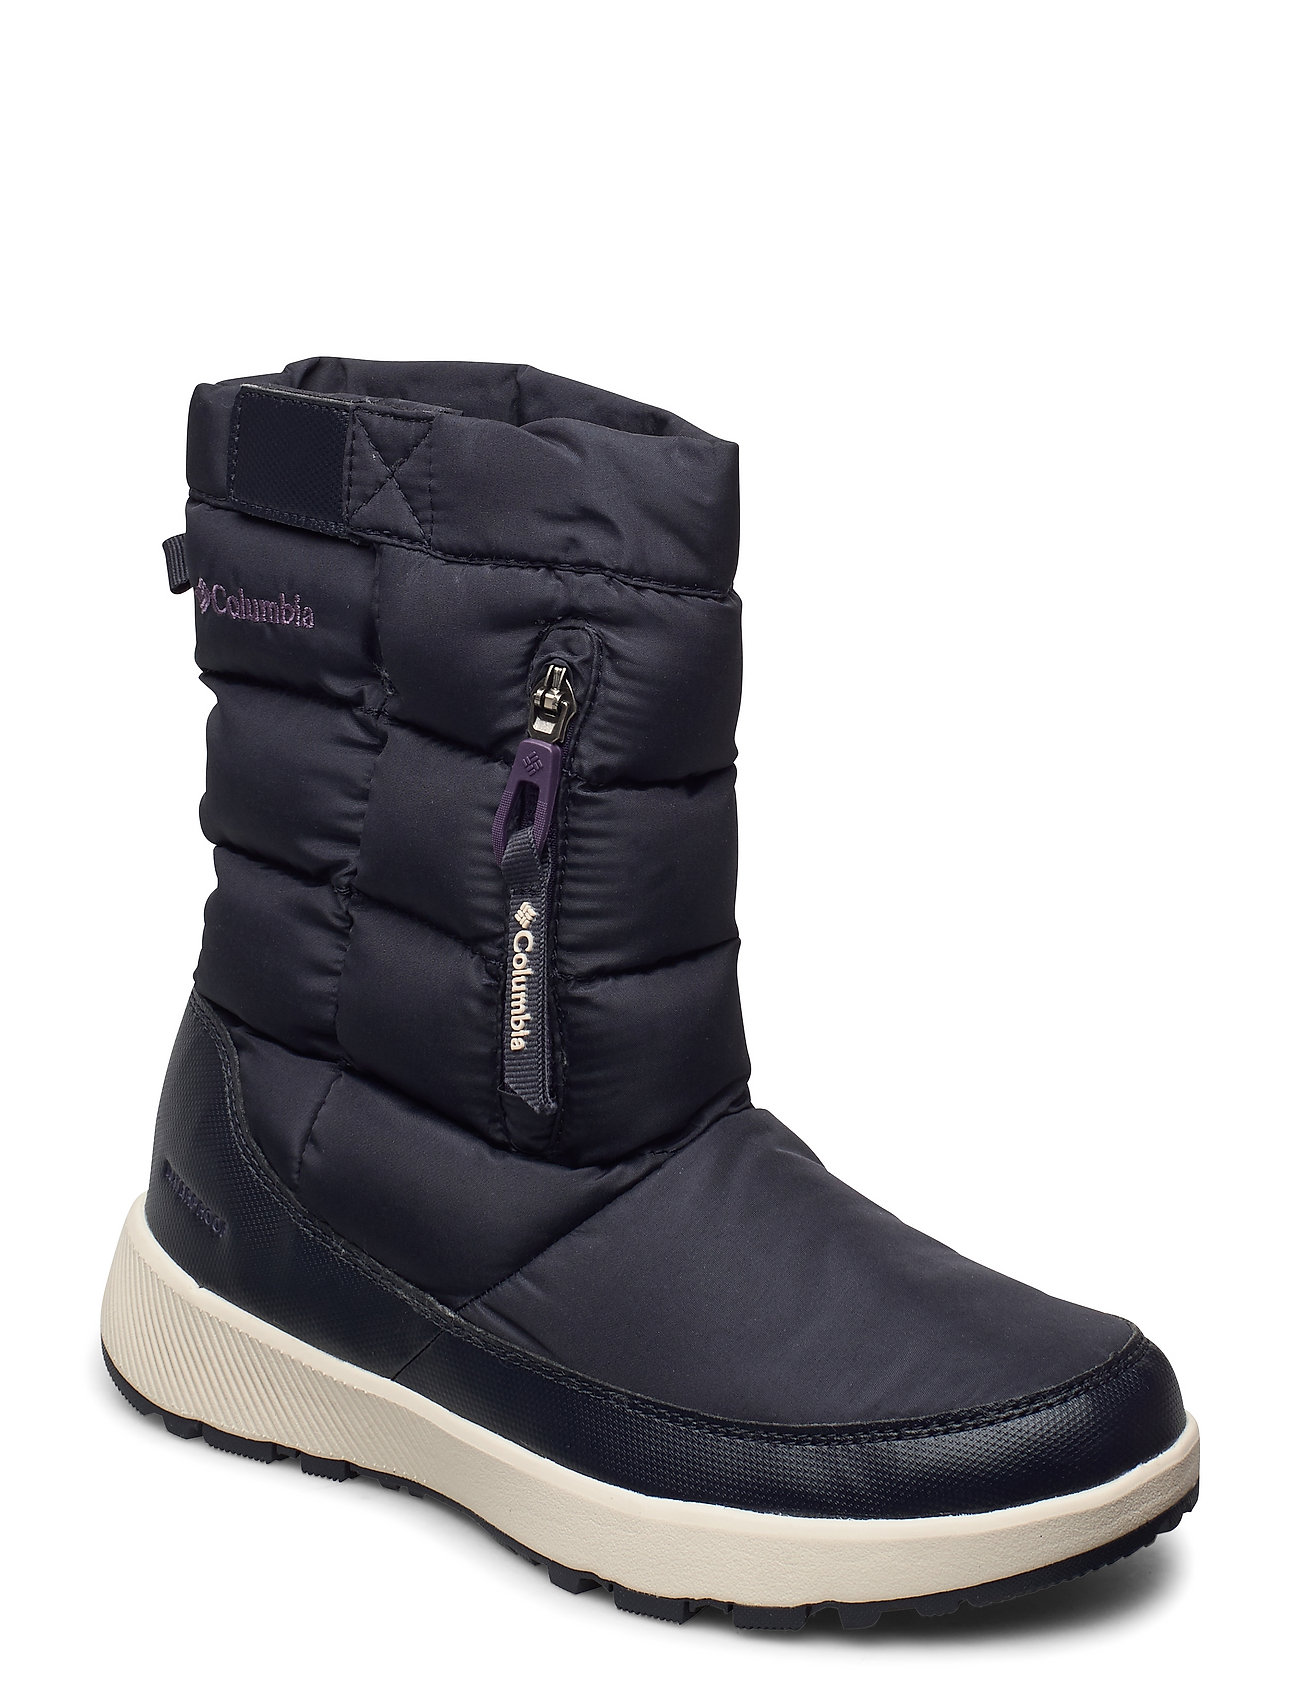 Image of Paninaro™ Omni-Heat™ Pull On Shoes Boots Ankle Boots Ankle Boot - Flat Blå Columbia (3445904617)